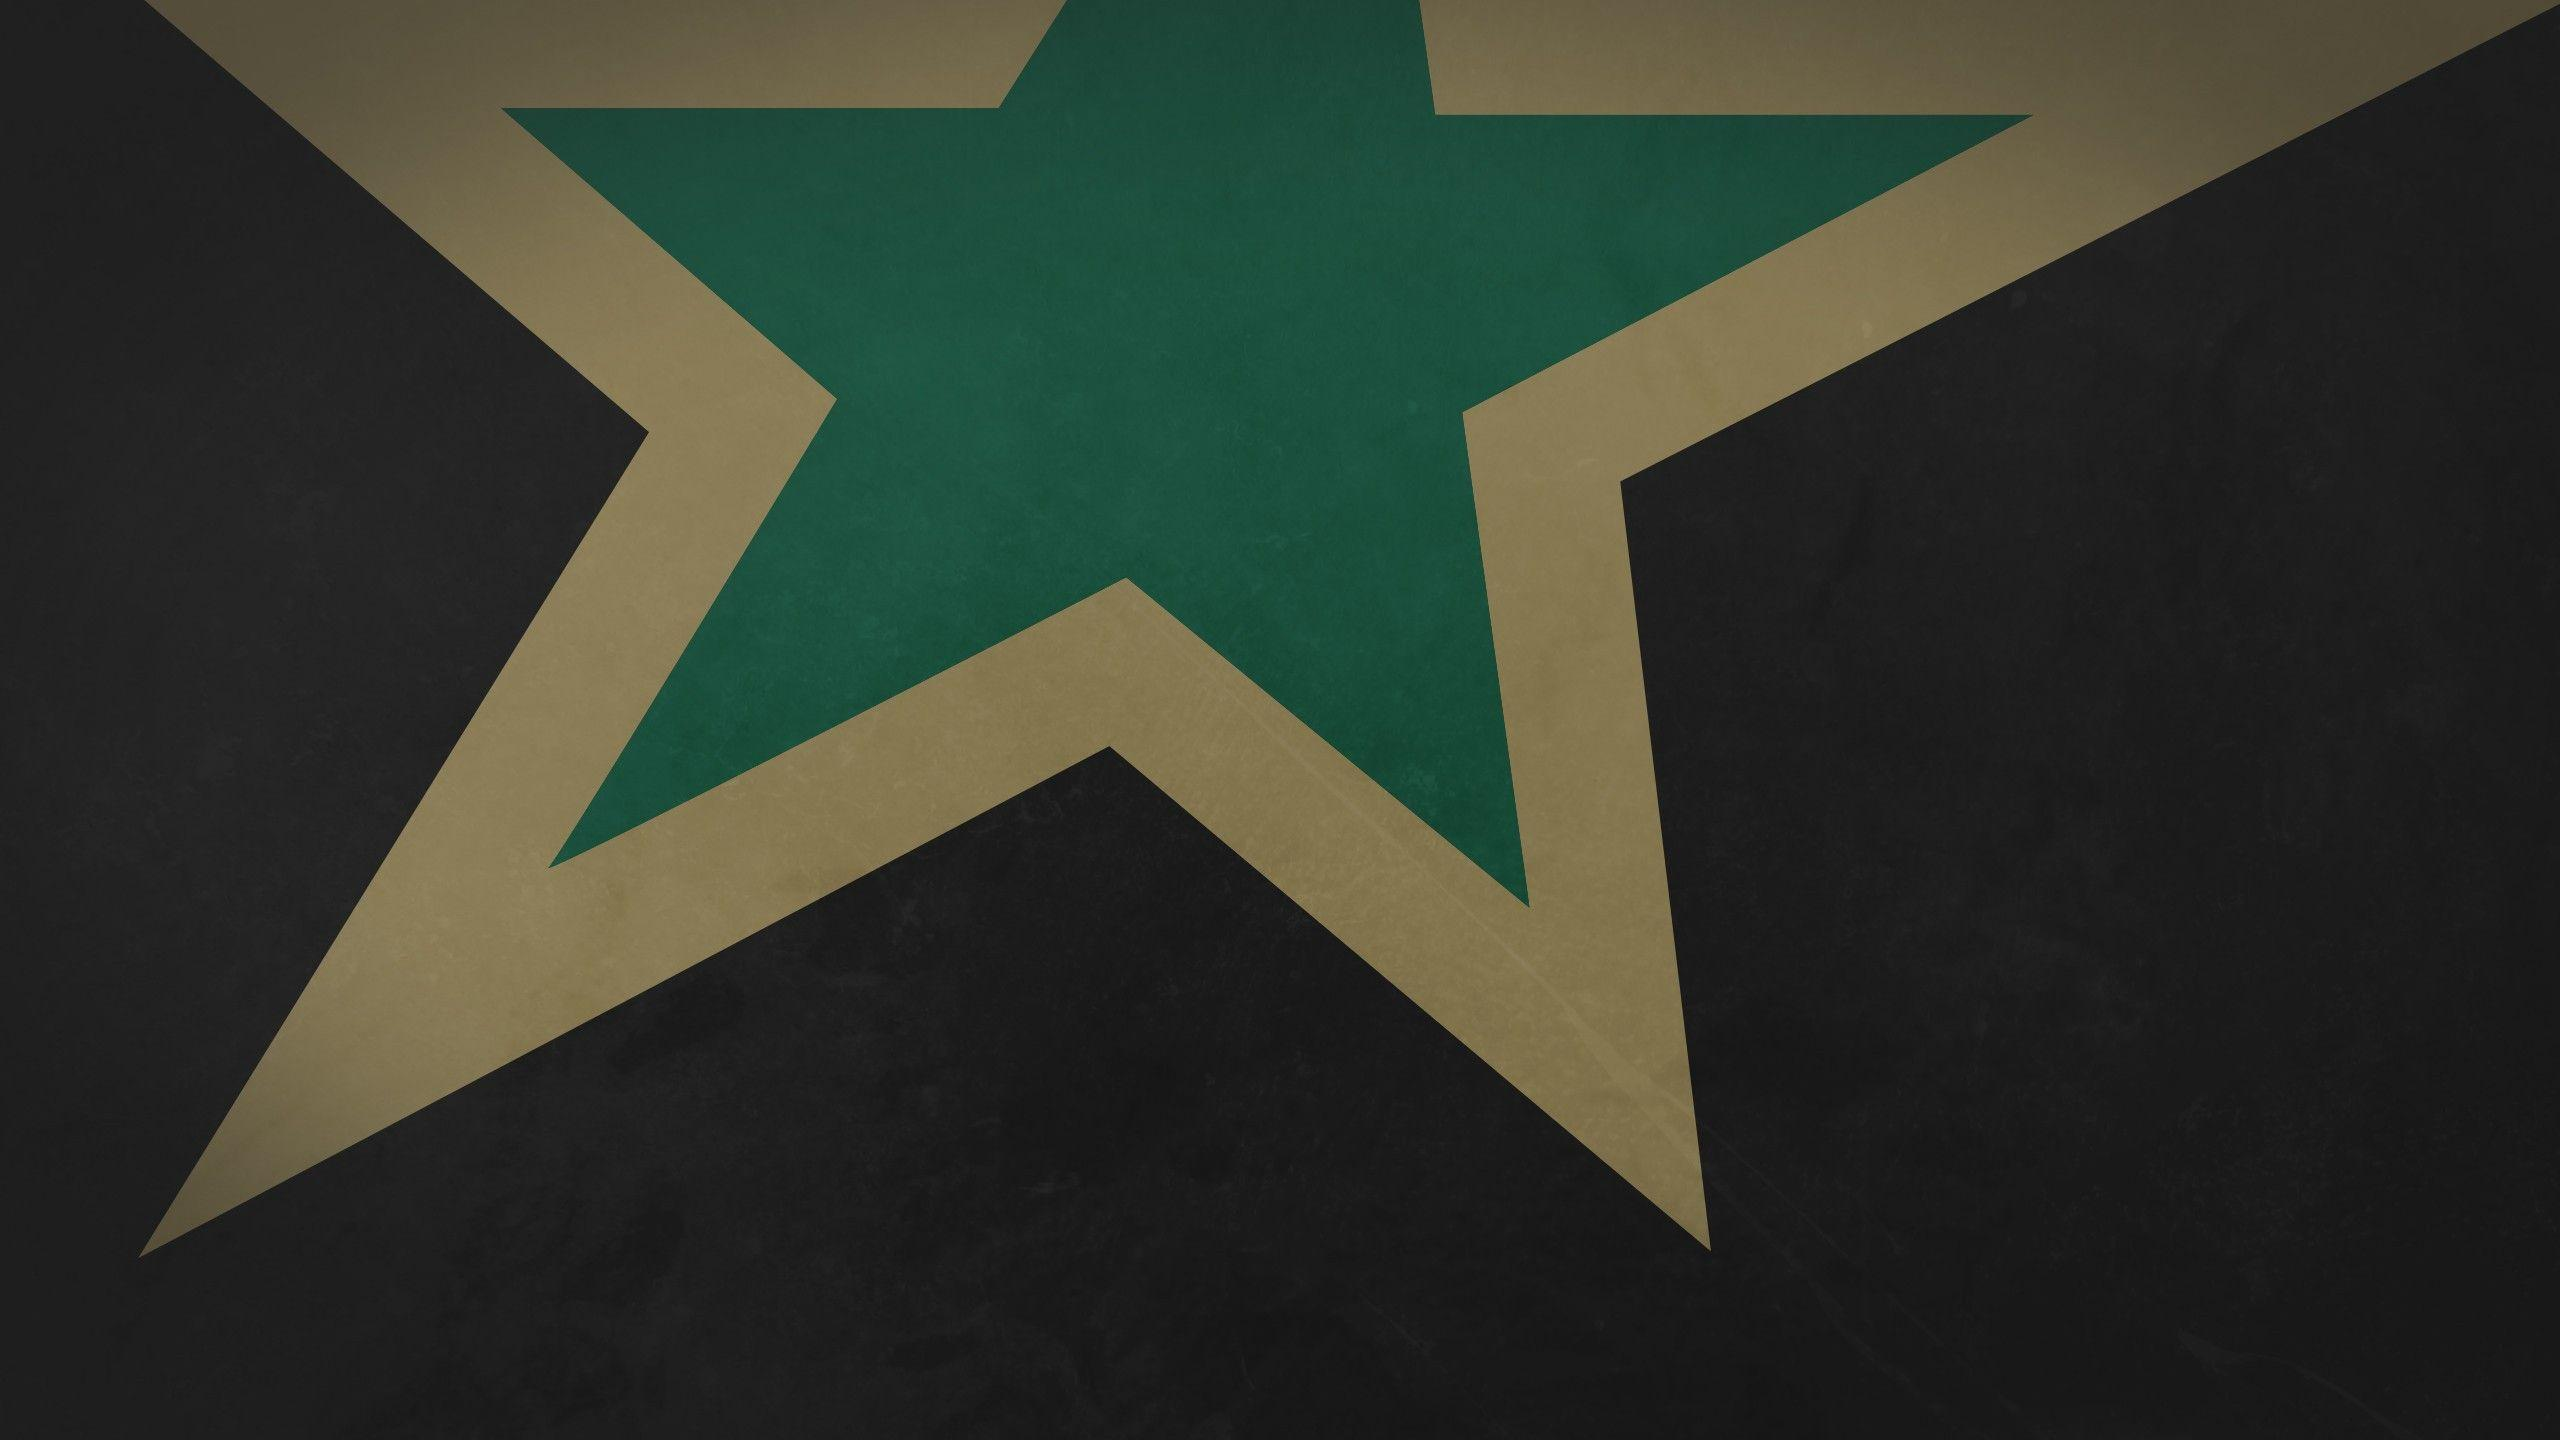 Dallas Stars Computer Wallpapers, Desktop Backgrounds | 2560x1440 ...